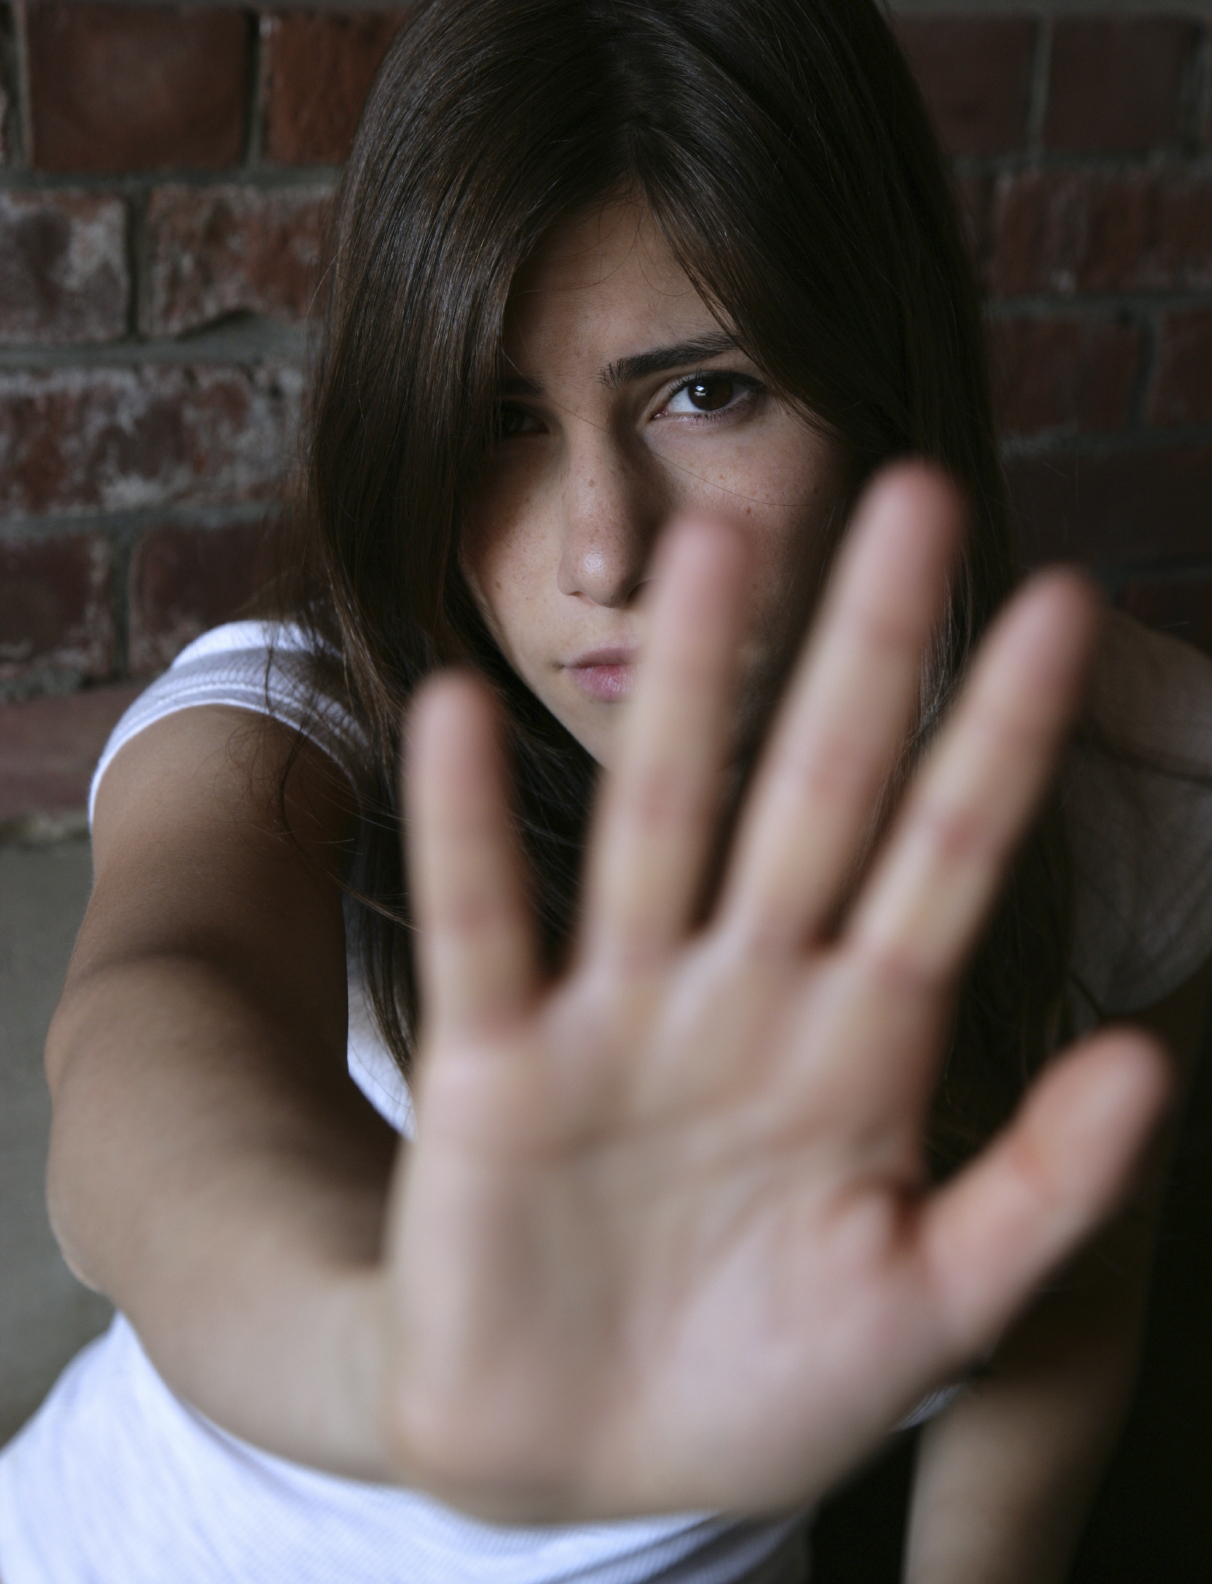 girl guarding herself with hand up